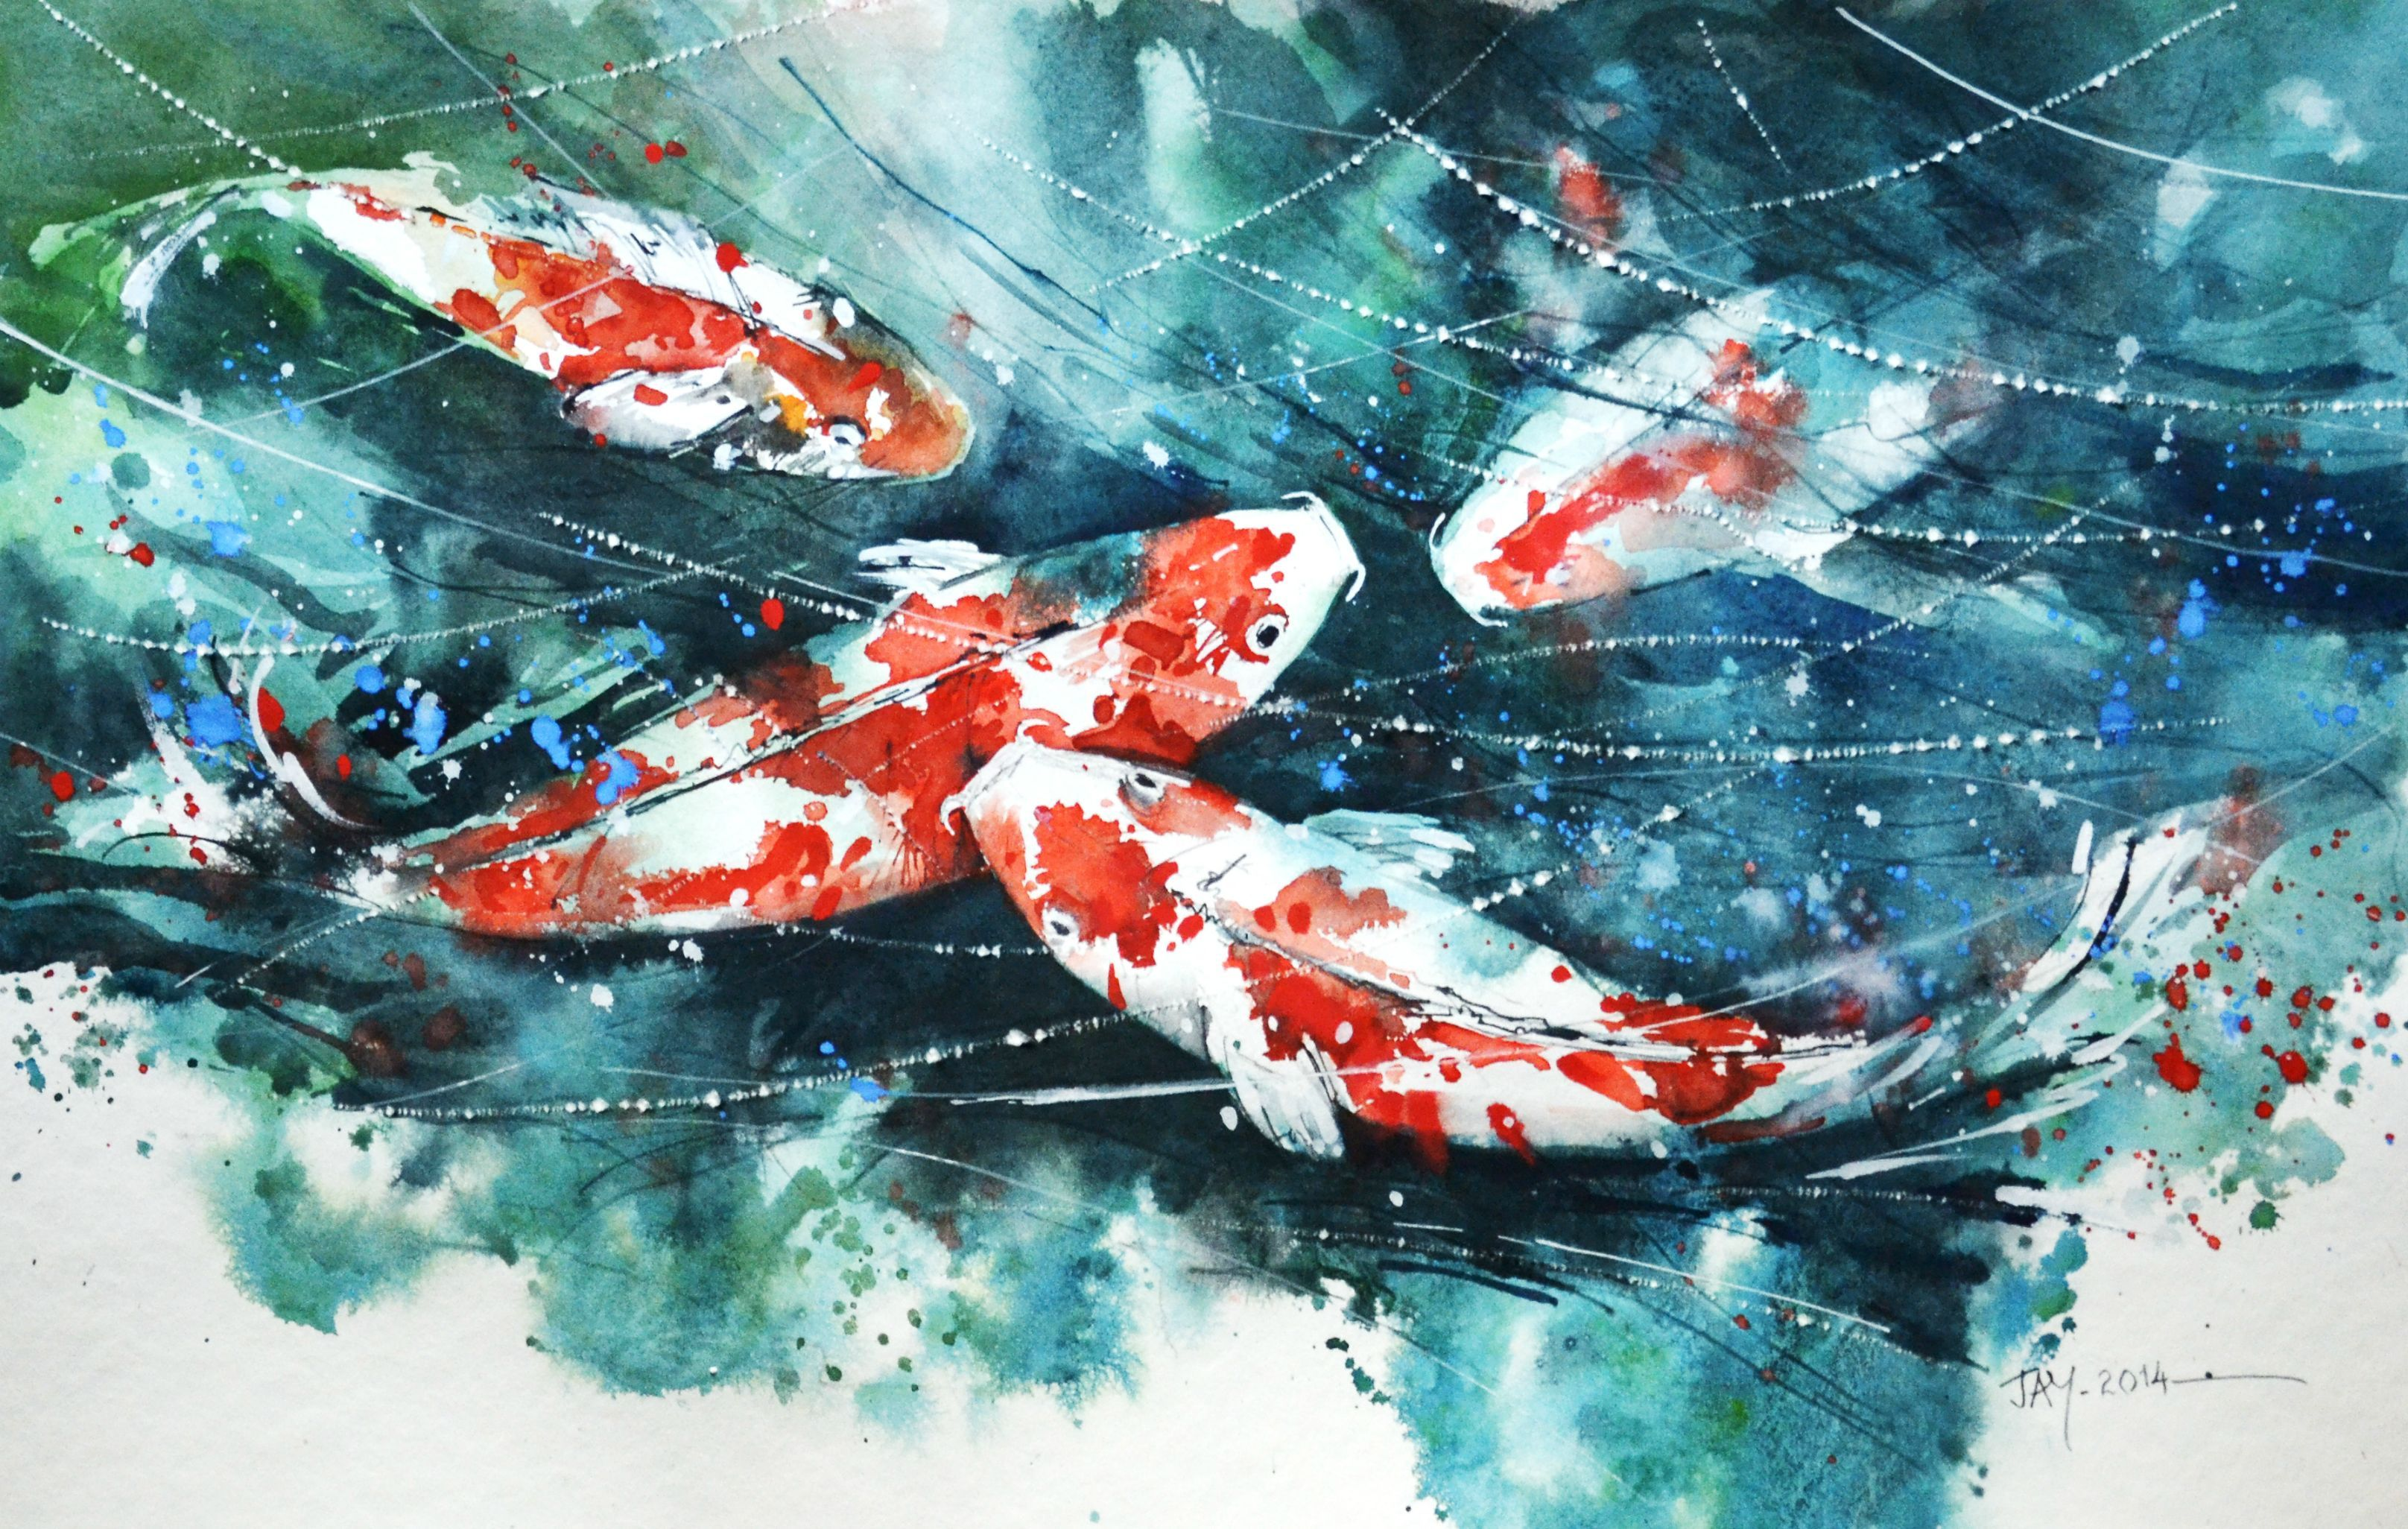 Dad has been painting 2 pieces a week for years he did for Japanese fish painting